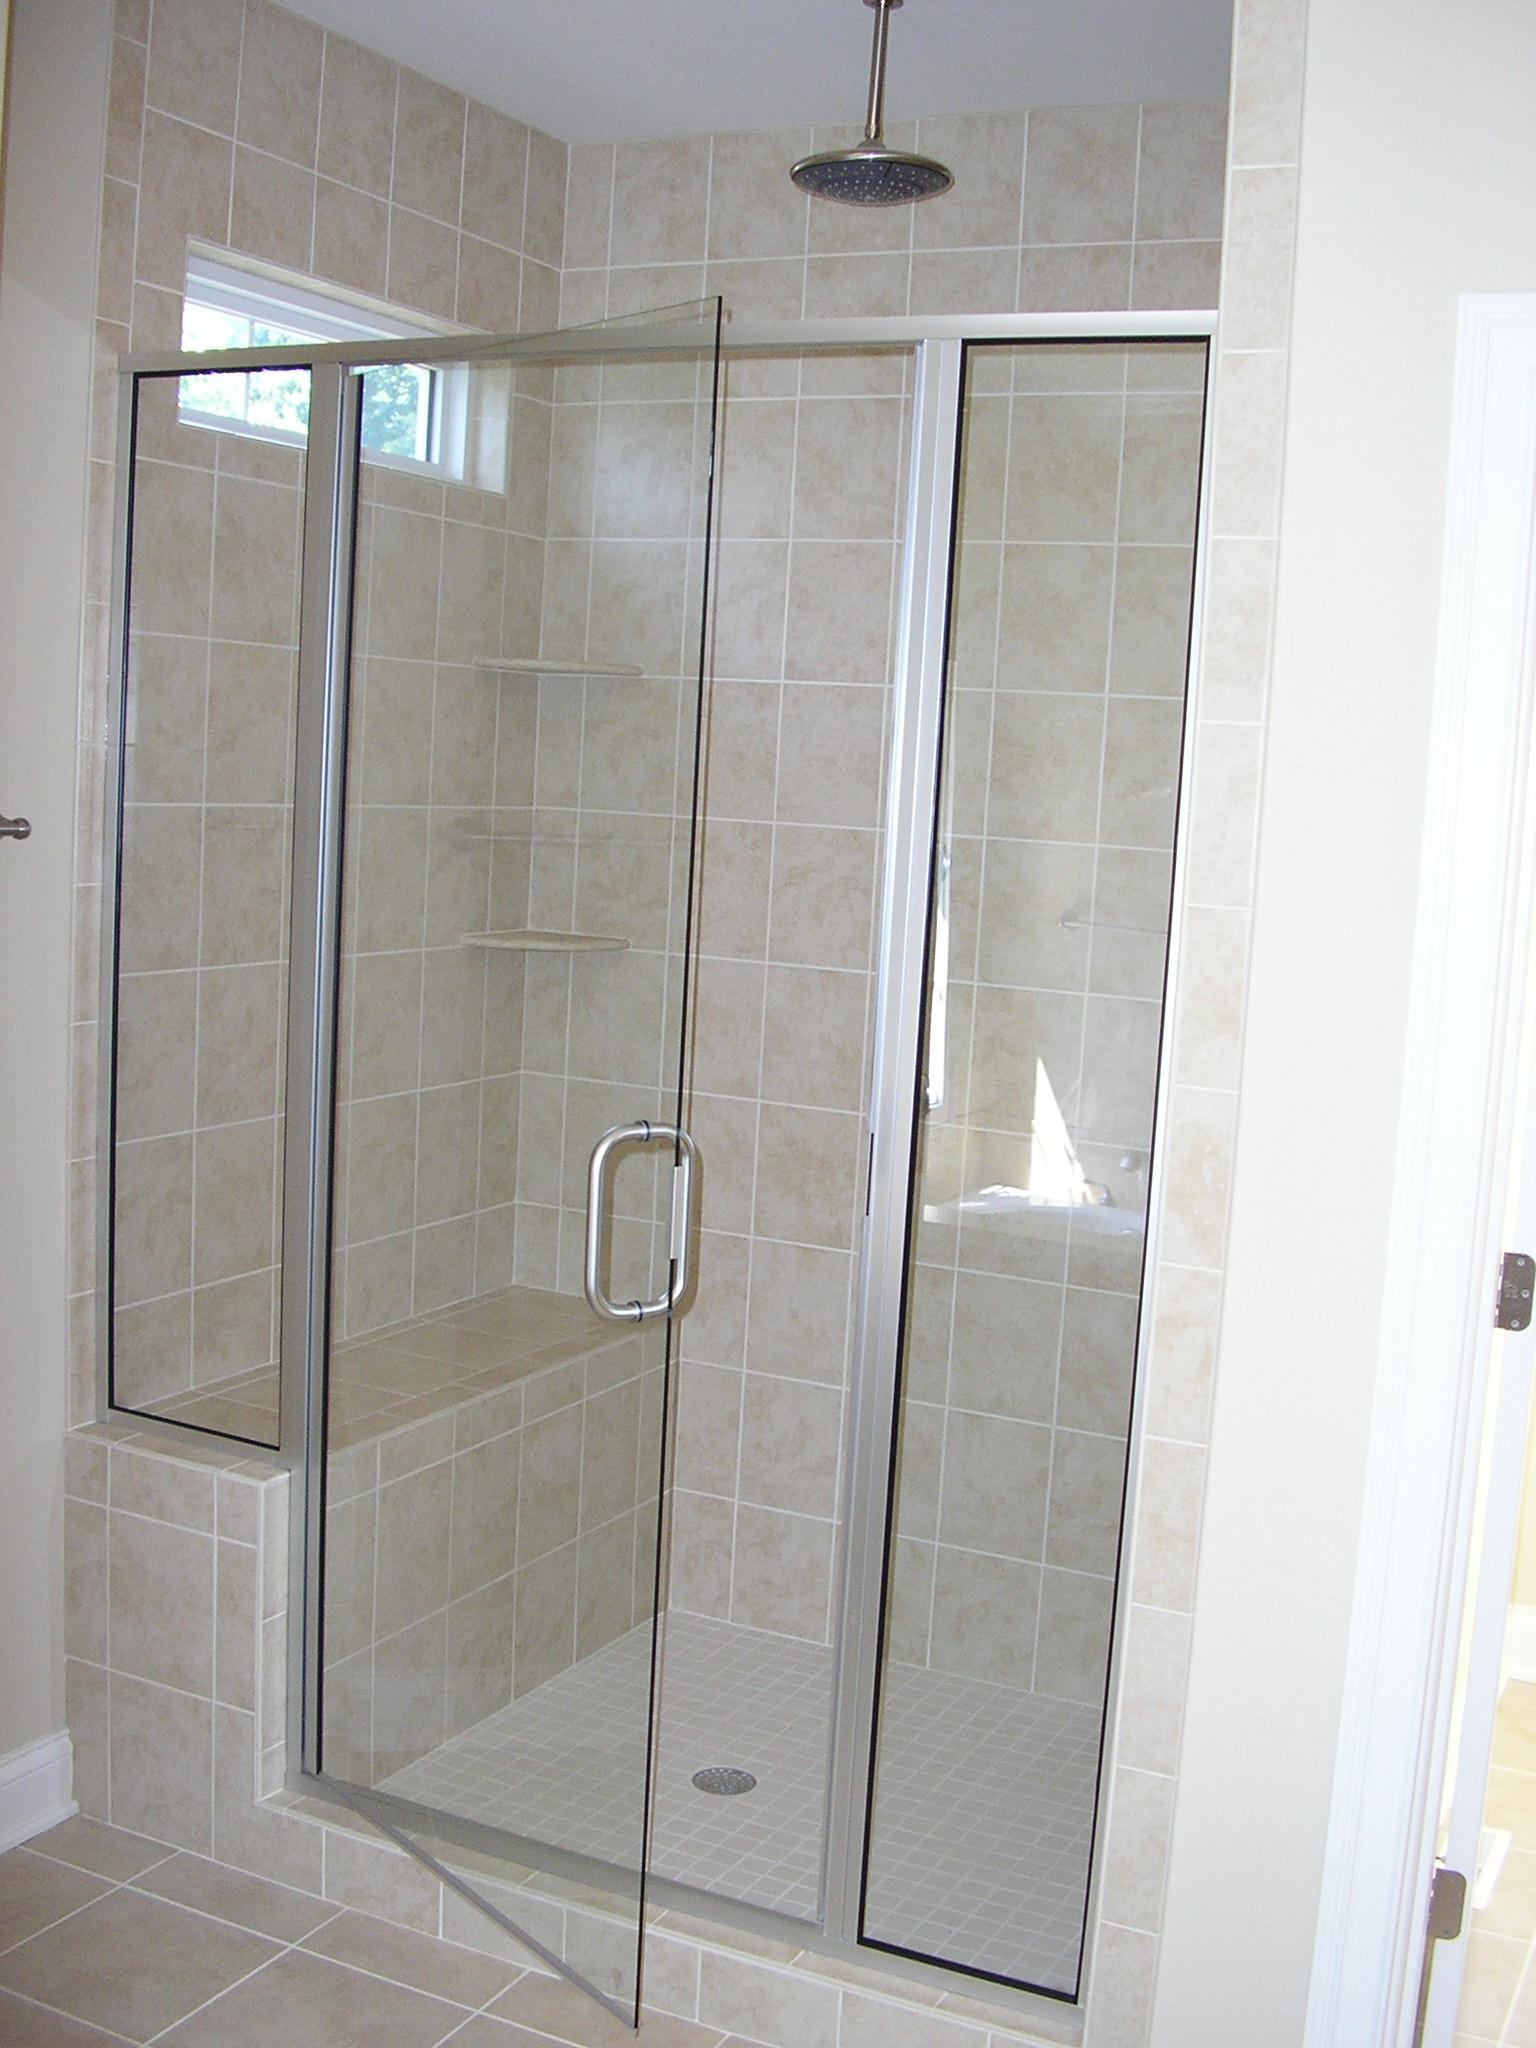 Clarkston Glass Shower Doors